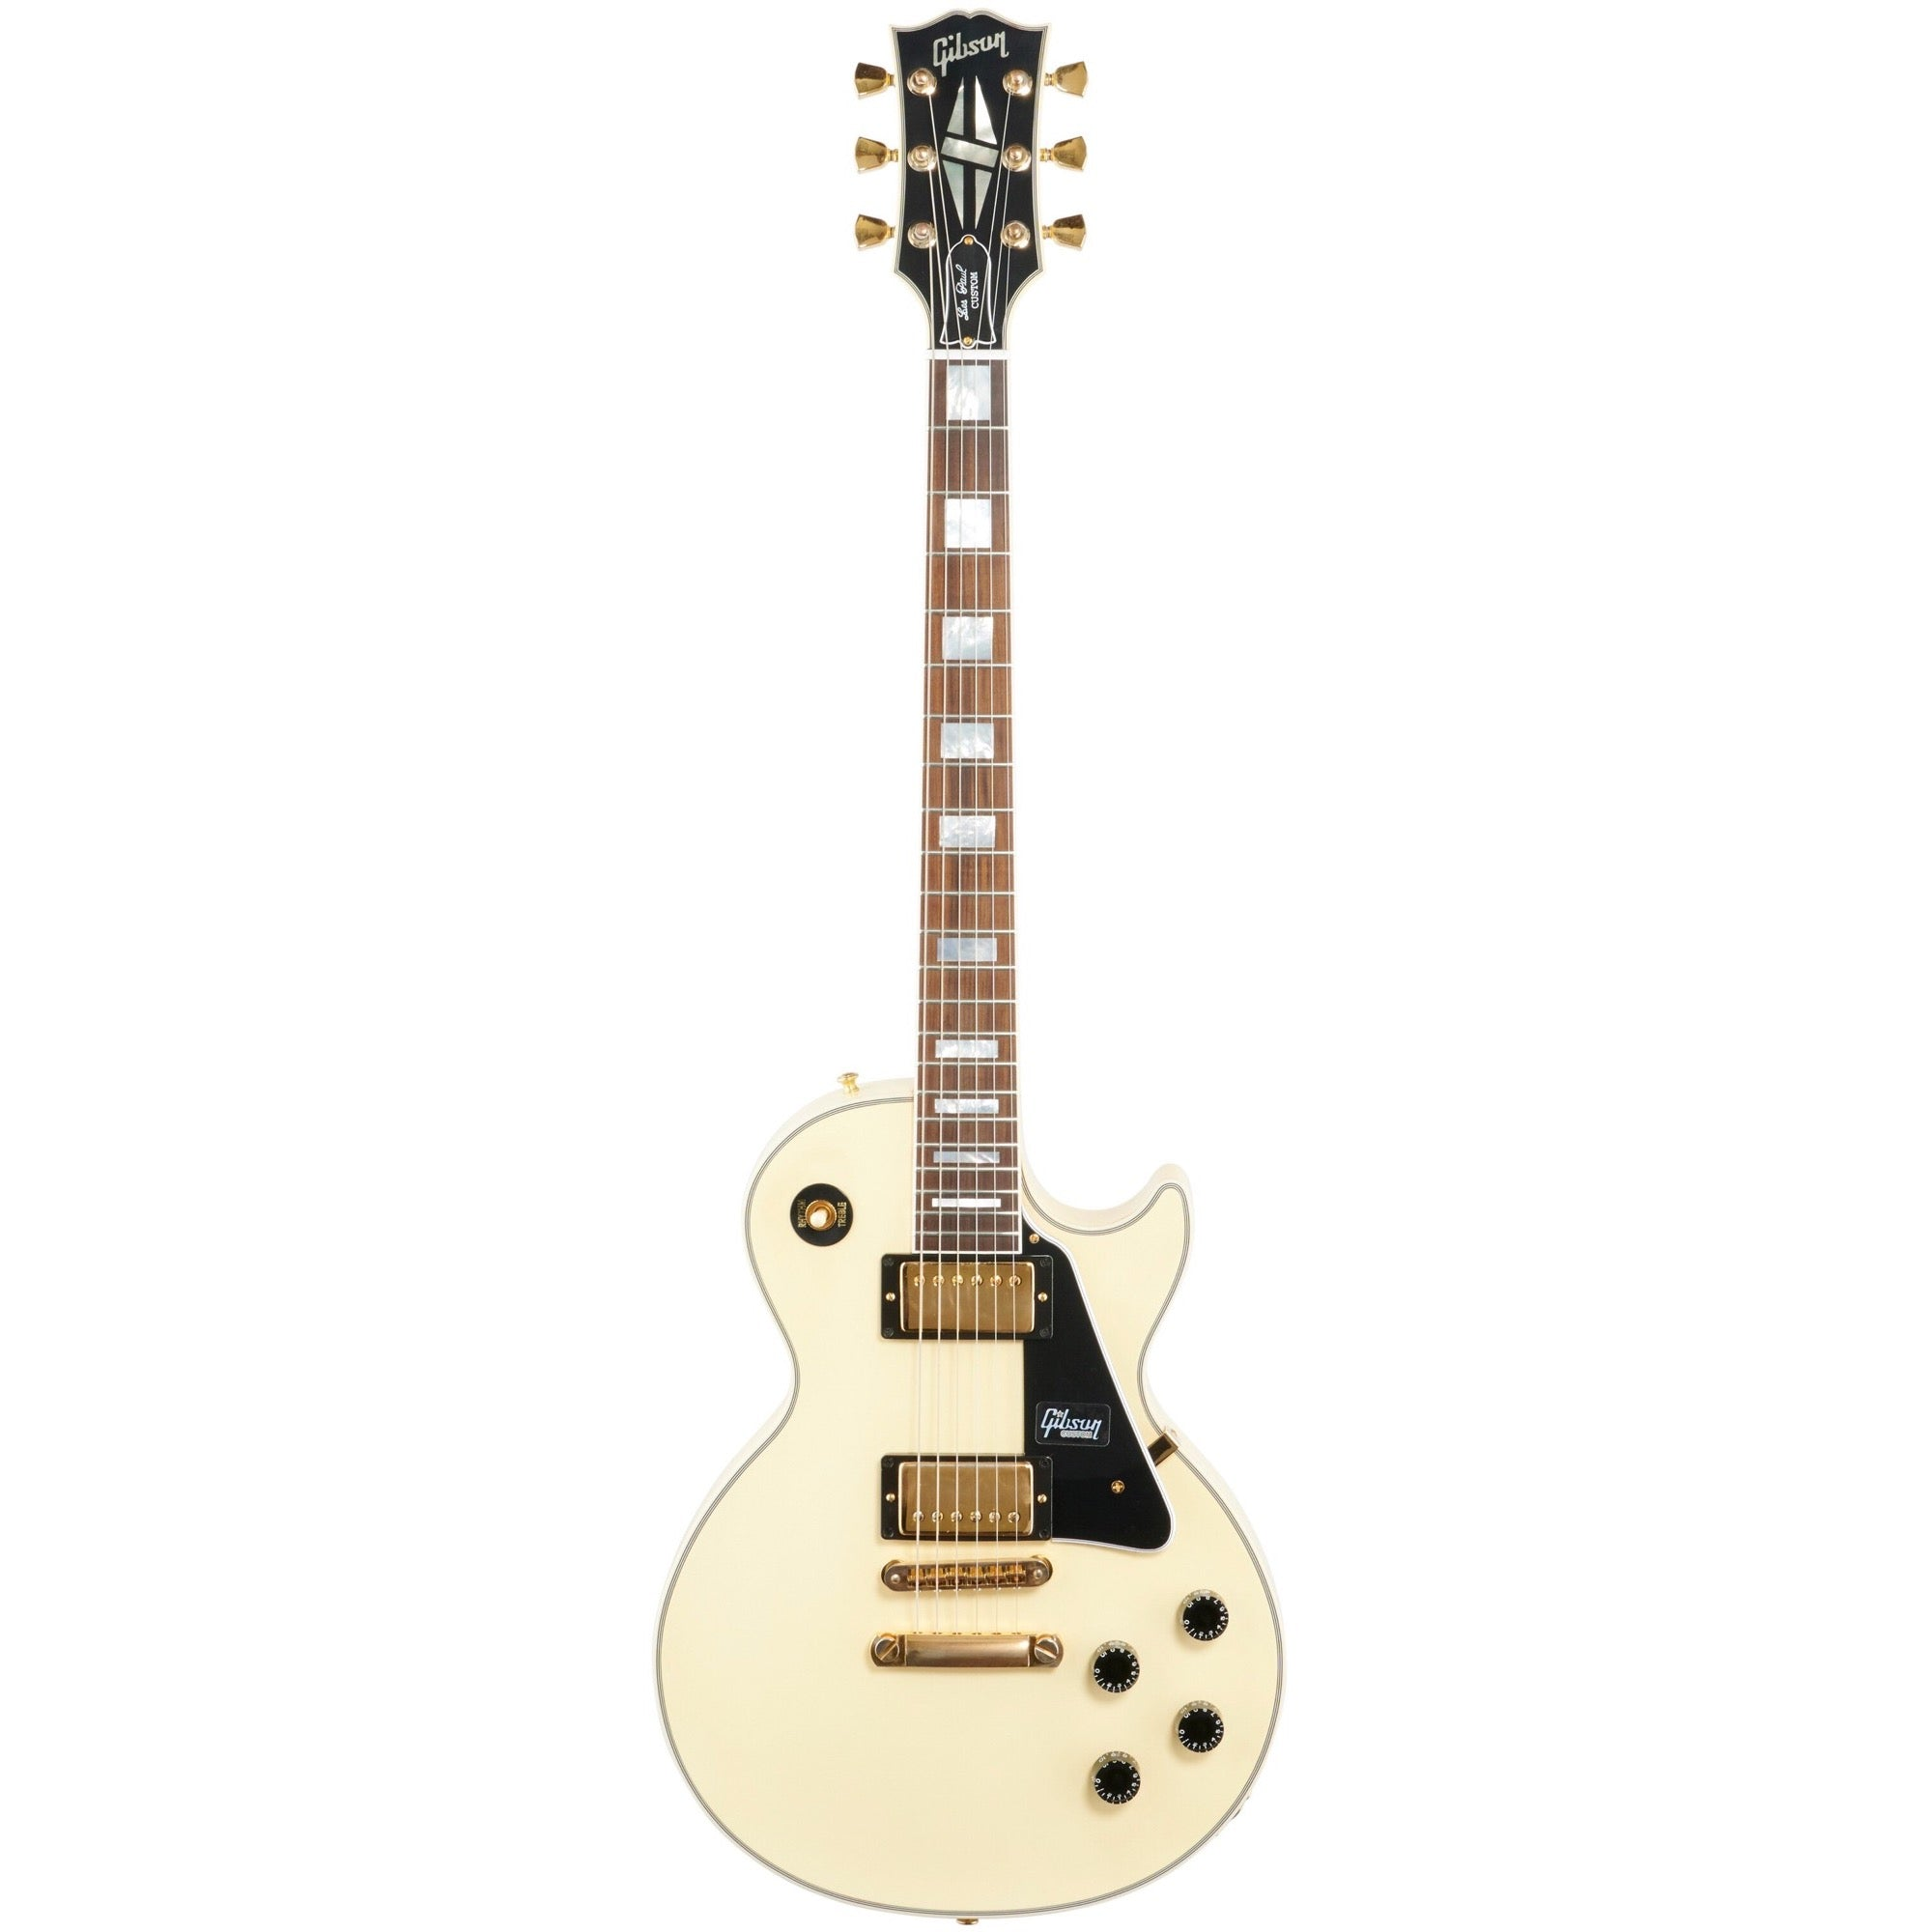 Gibson Exclusive Les Paul Custom VOS Electric Guitar, Bolivian Rosewood Fingerboard (with Case), Classic White